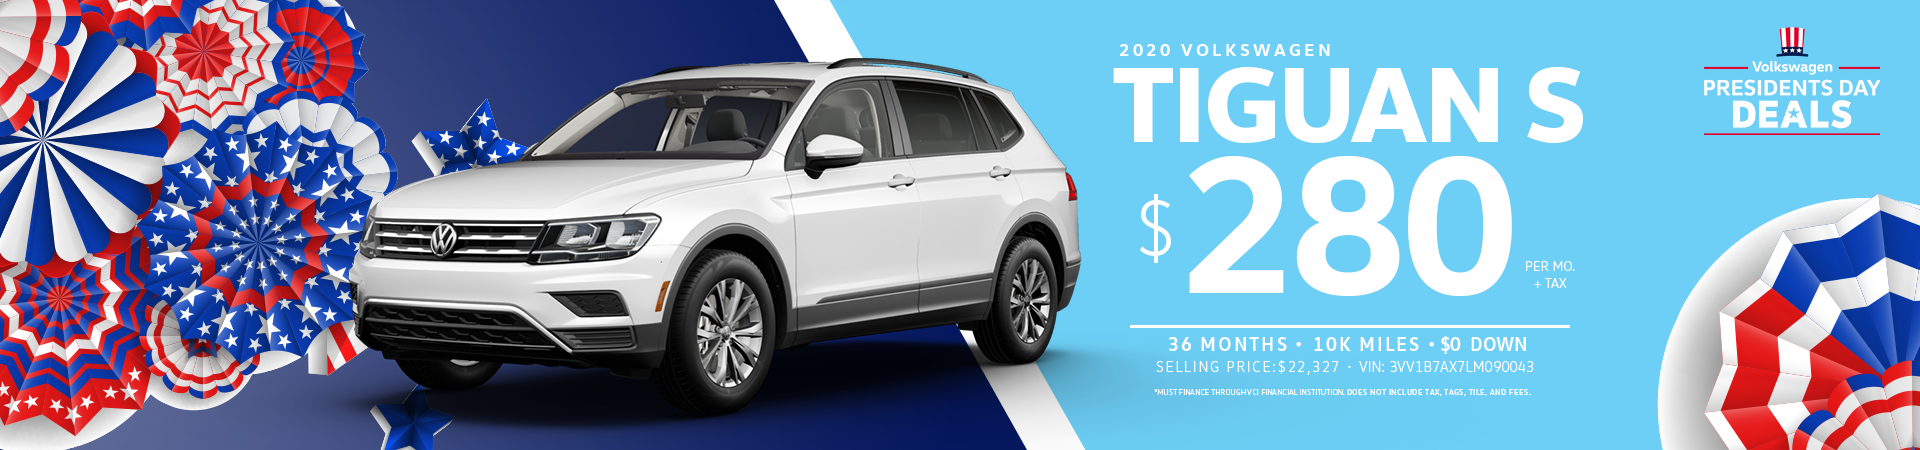 Lease a 2020 Tiguan S for $280 a month